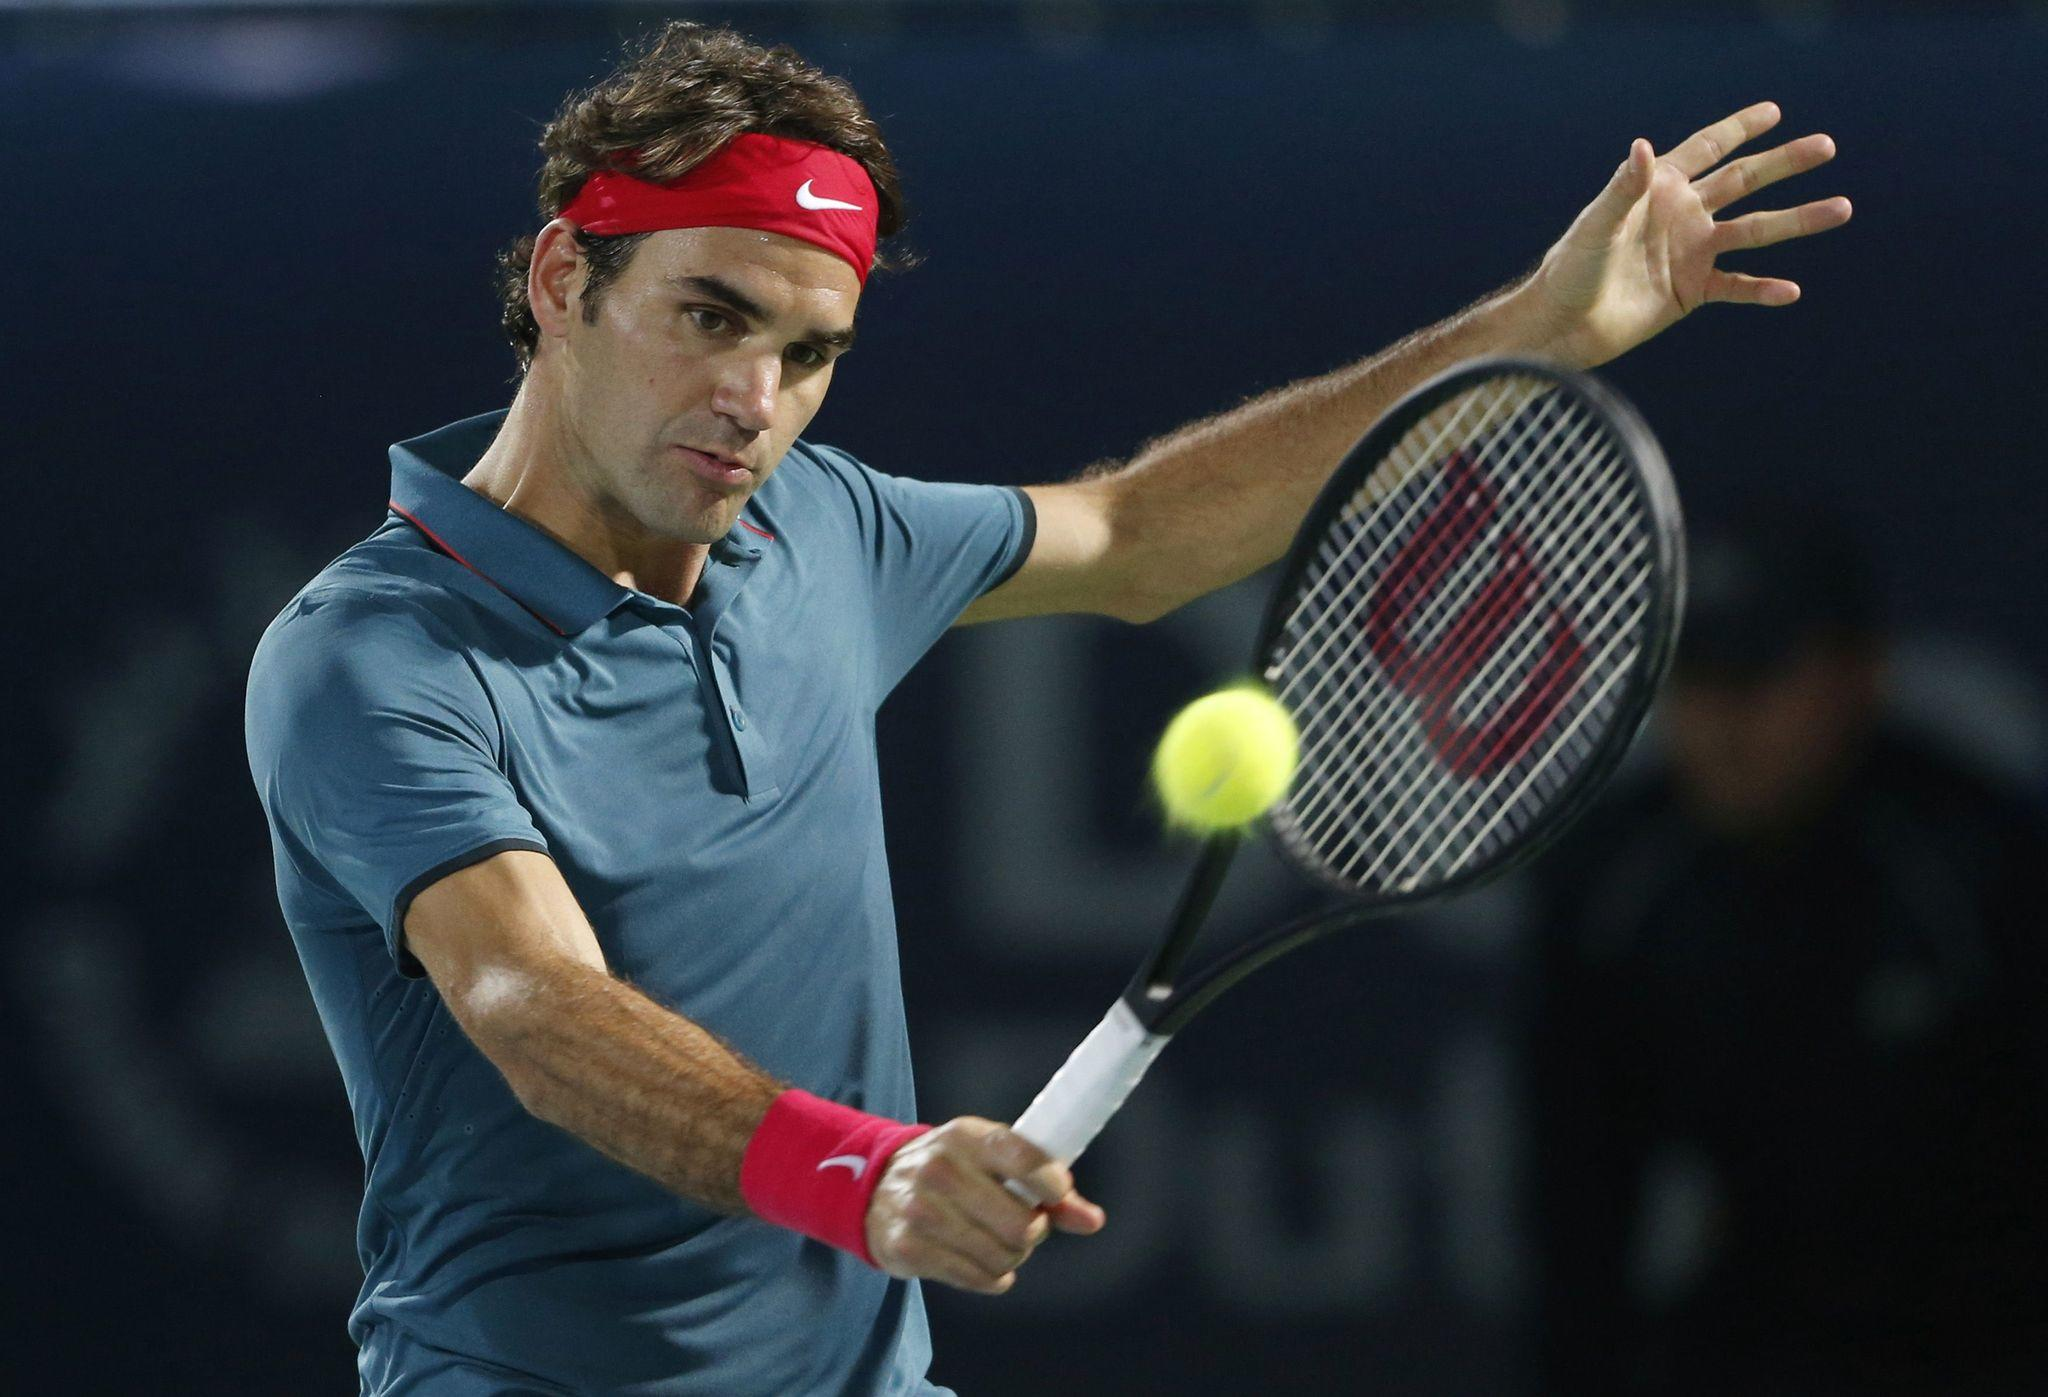 Roger Federer of Switzerland returns the ball to Tomas Berdych of the Czech Republic during their men's singles final match at the ATP Dubai Tennis Championships.